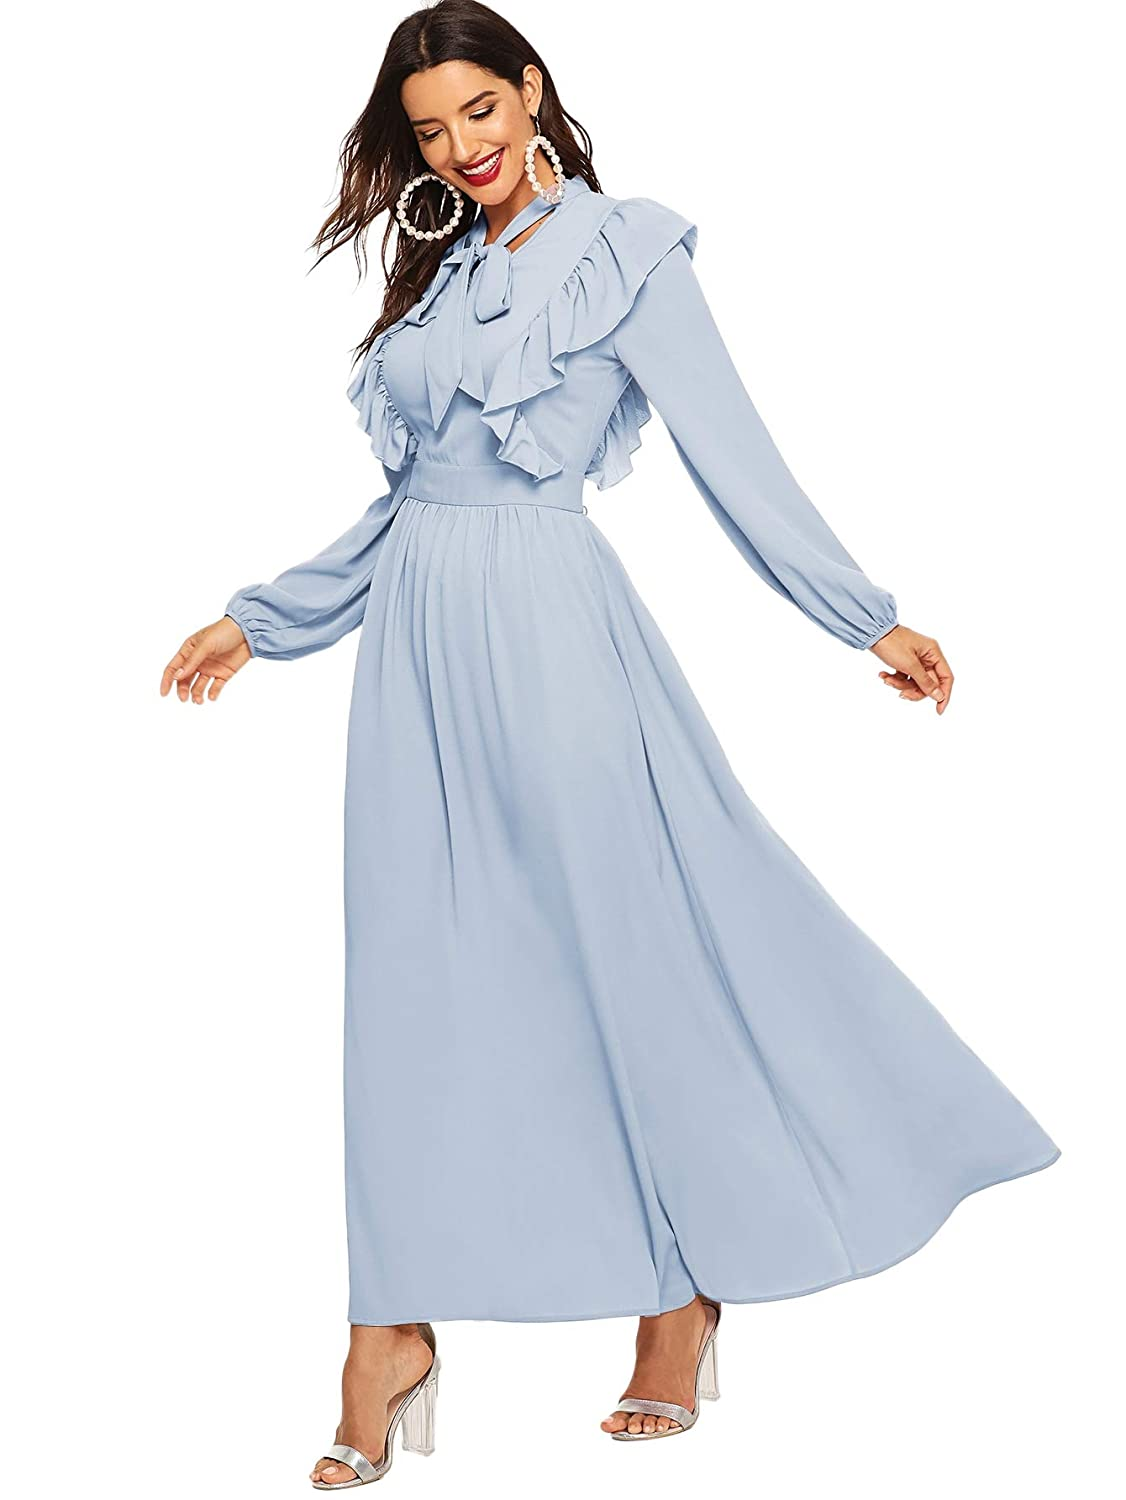 500 Vintage Style Dresses for Sale | Vintage Inspired Dresses Verdusa Womens Tie Neck Ruffle Trim Long Sleeve Flared Flowy Maxi Dress $36.99 AT vintagedancer.com